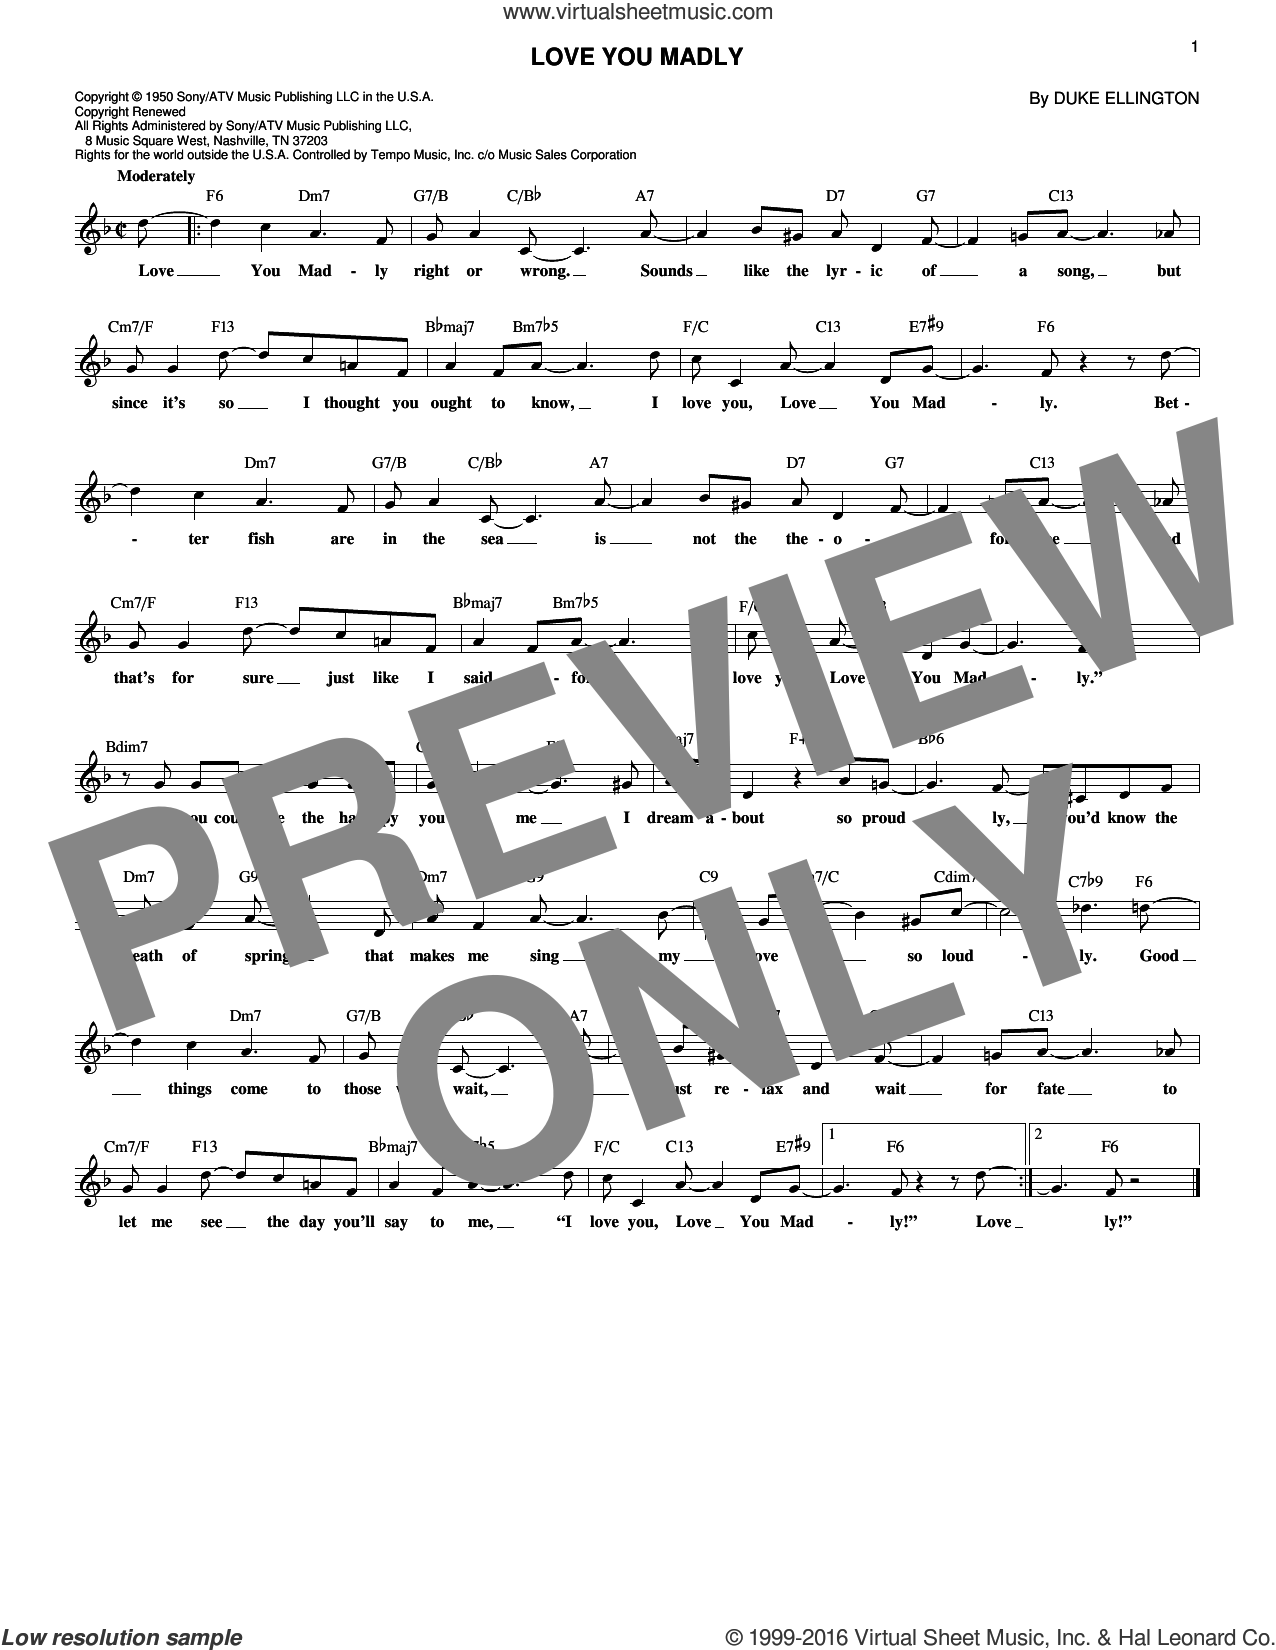 Love You Madly sheet music for voice and other instruments (fake book) by Duke Ellington, intermediate skill level